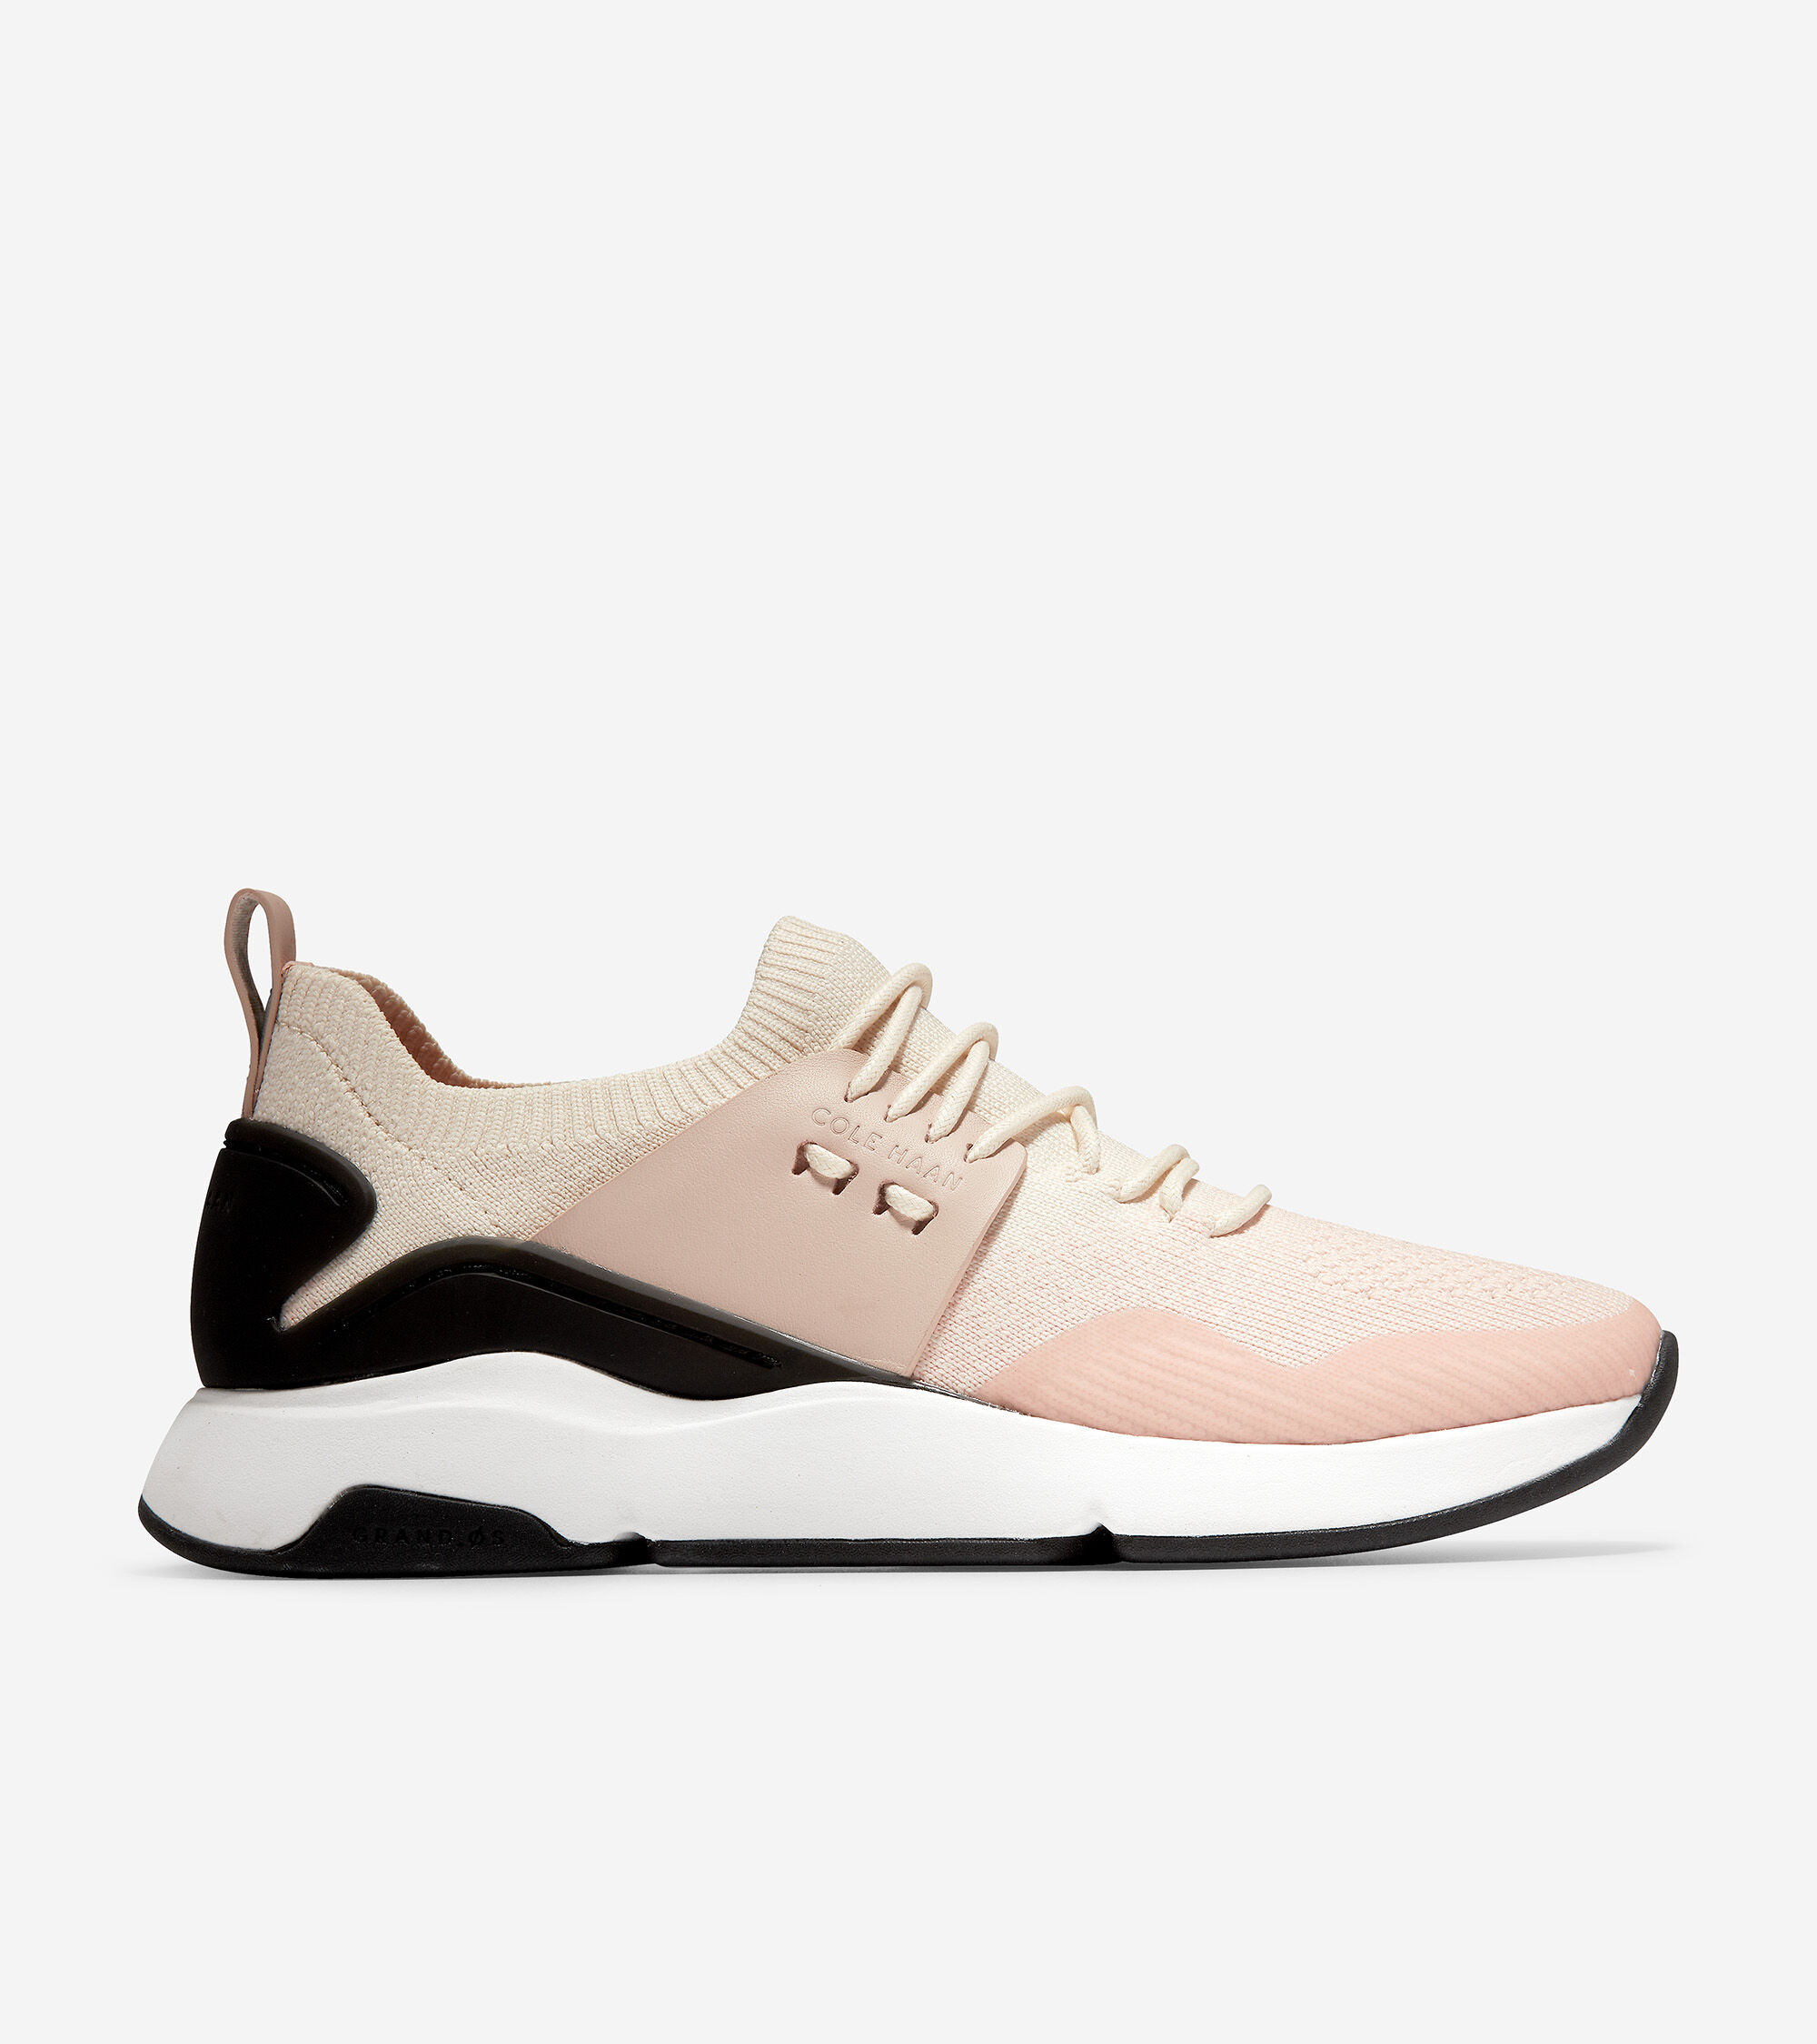 All-Day Trainer in Ivory-Peach Blush